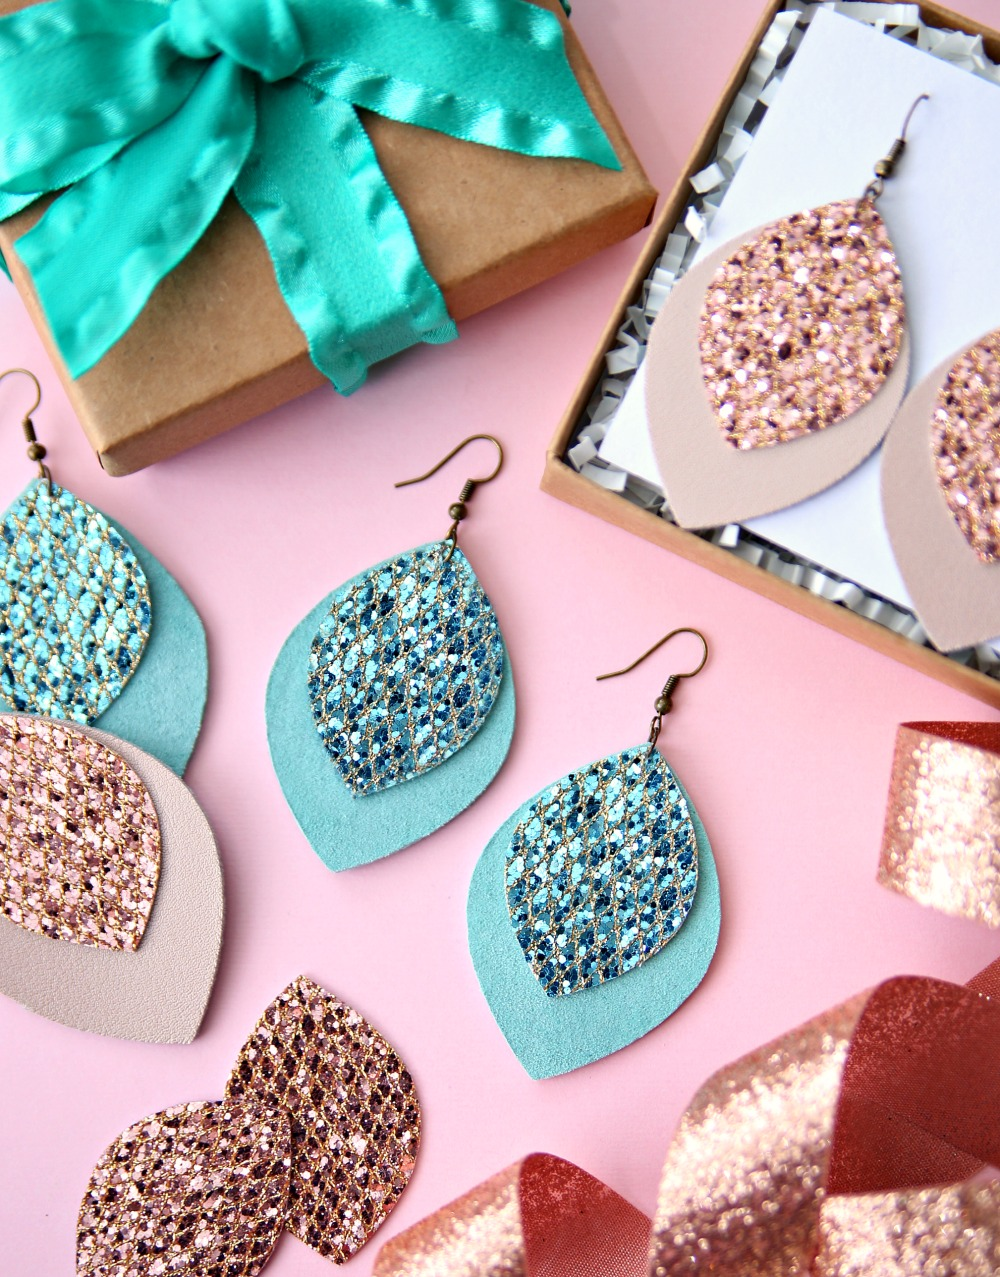 Leather earrings made with Cricut